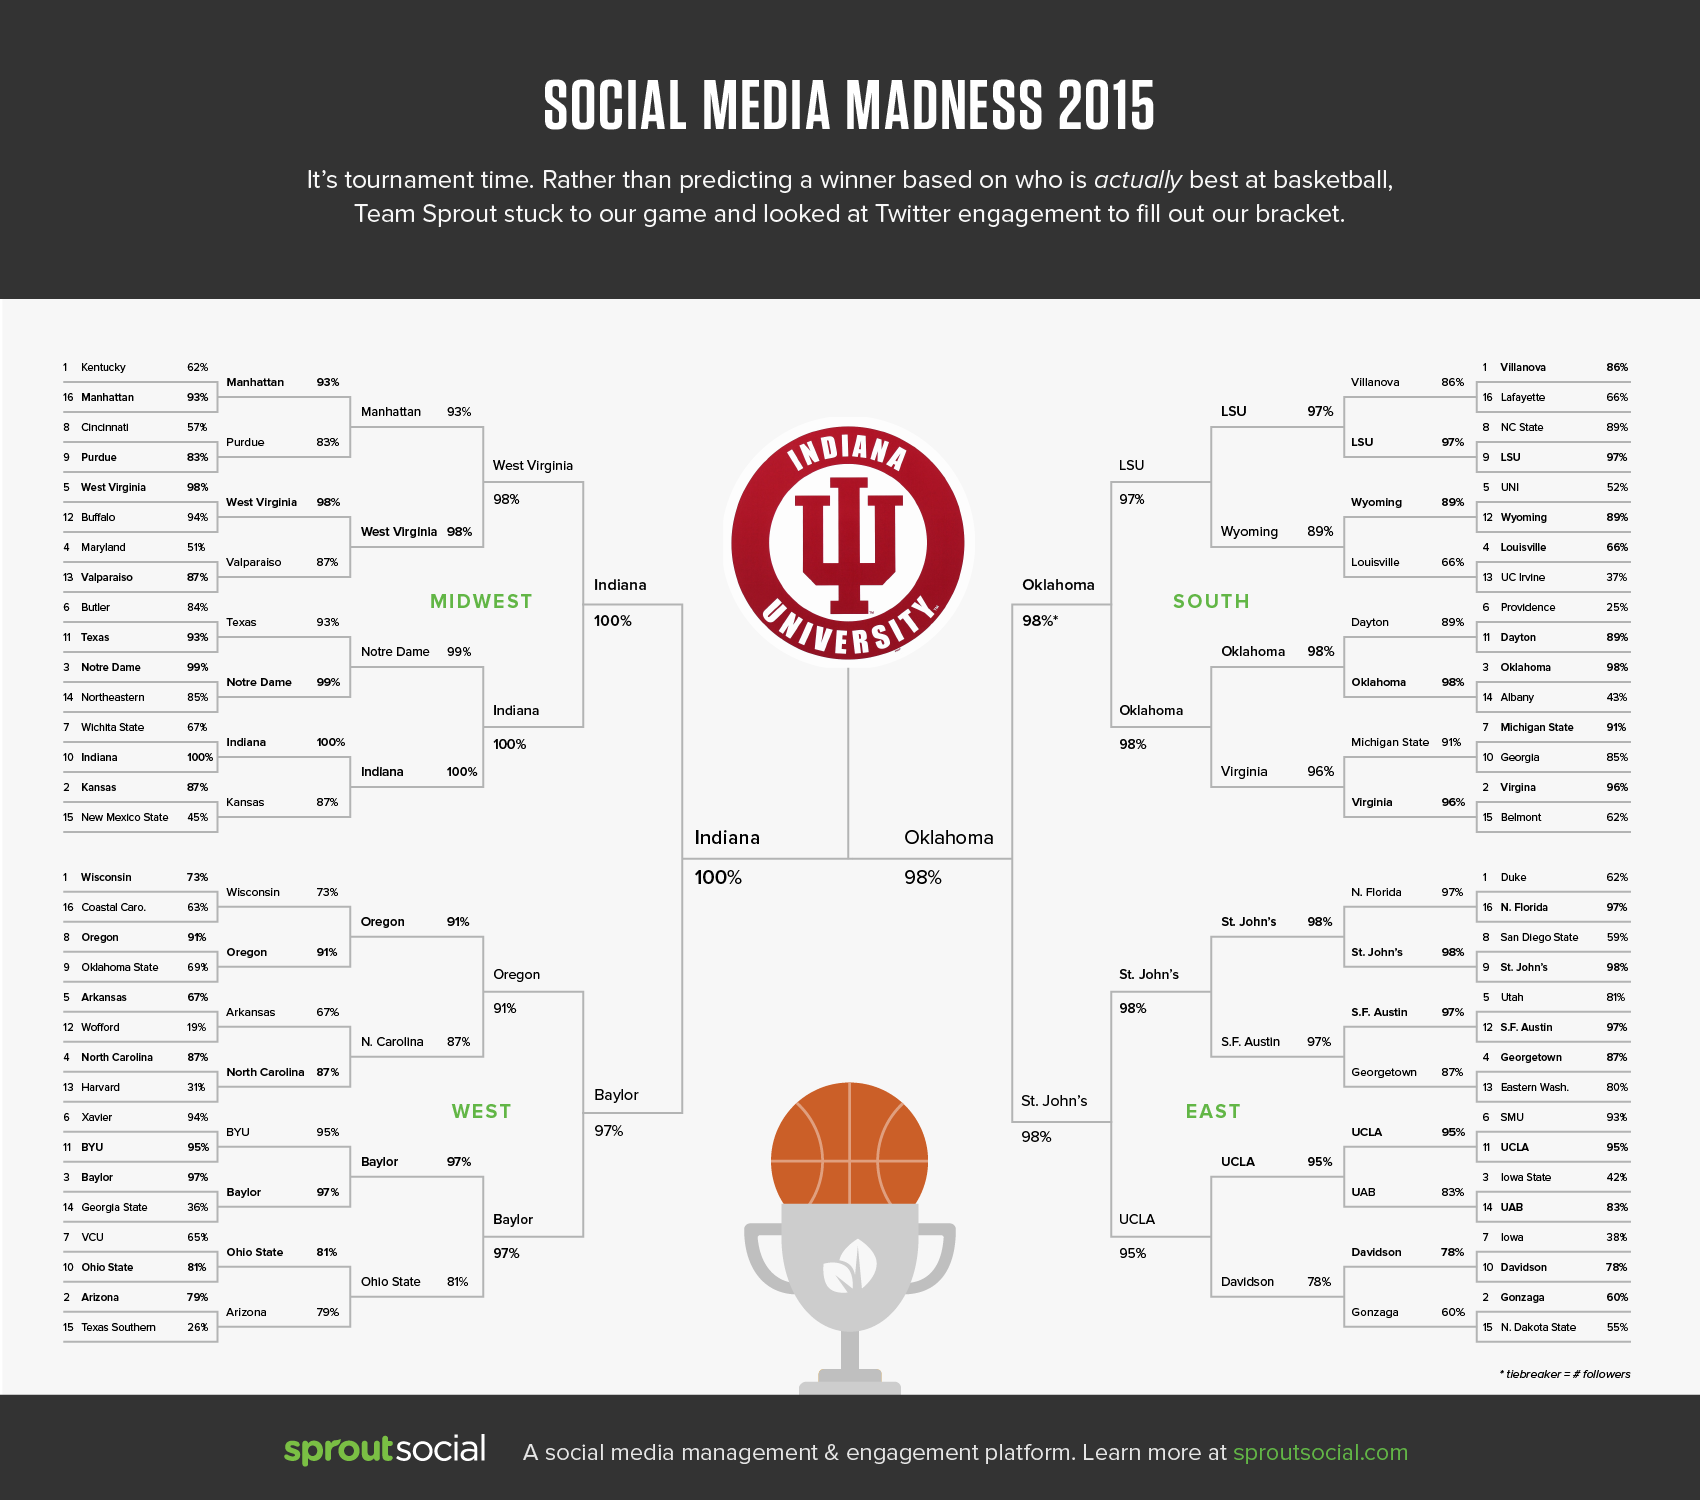 Sprout Social Media Madness 2015